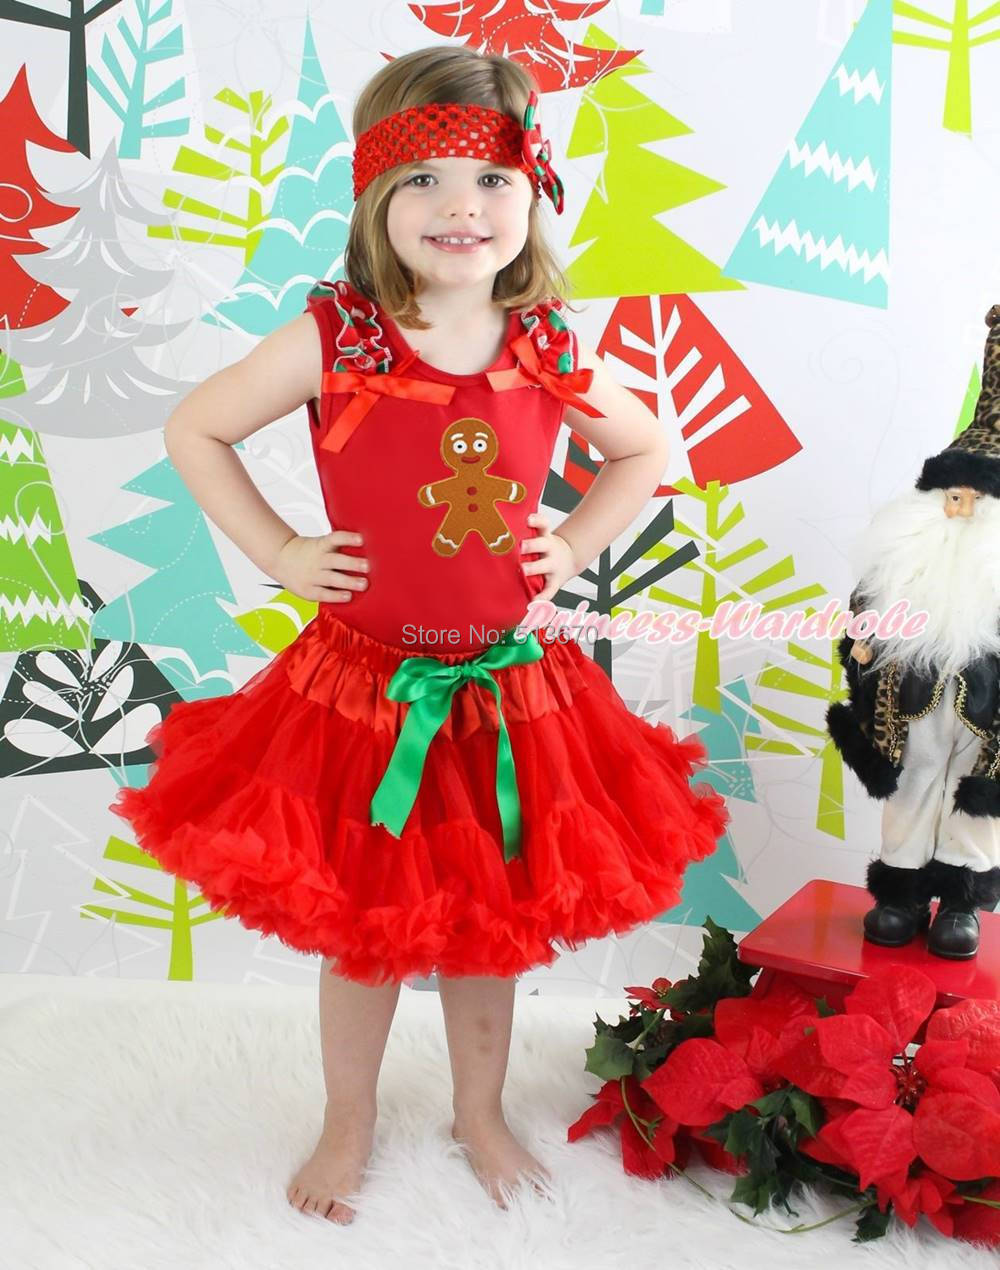 XMAS Gingerbread Red Top Shirt Red Pettiskirt Baby Girl Outfit Costume Set 1-8Y MAPSA0074<br>